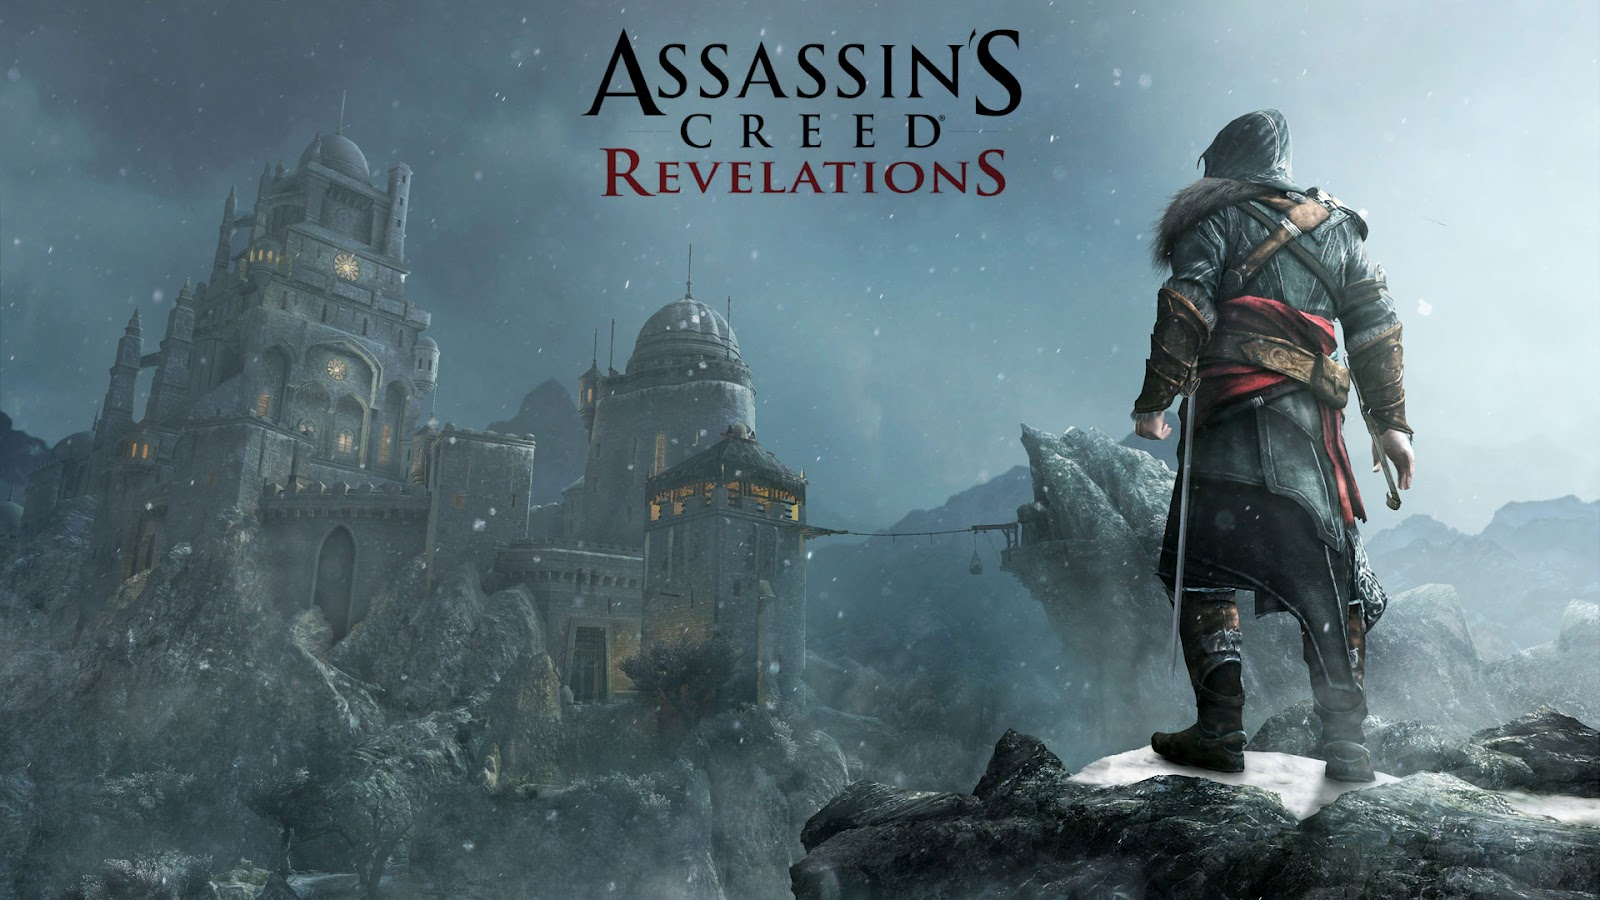 Assasins creed revelations HD android apk | nokia belle n8